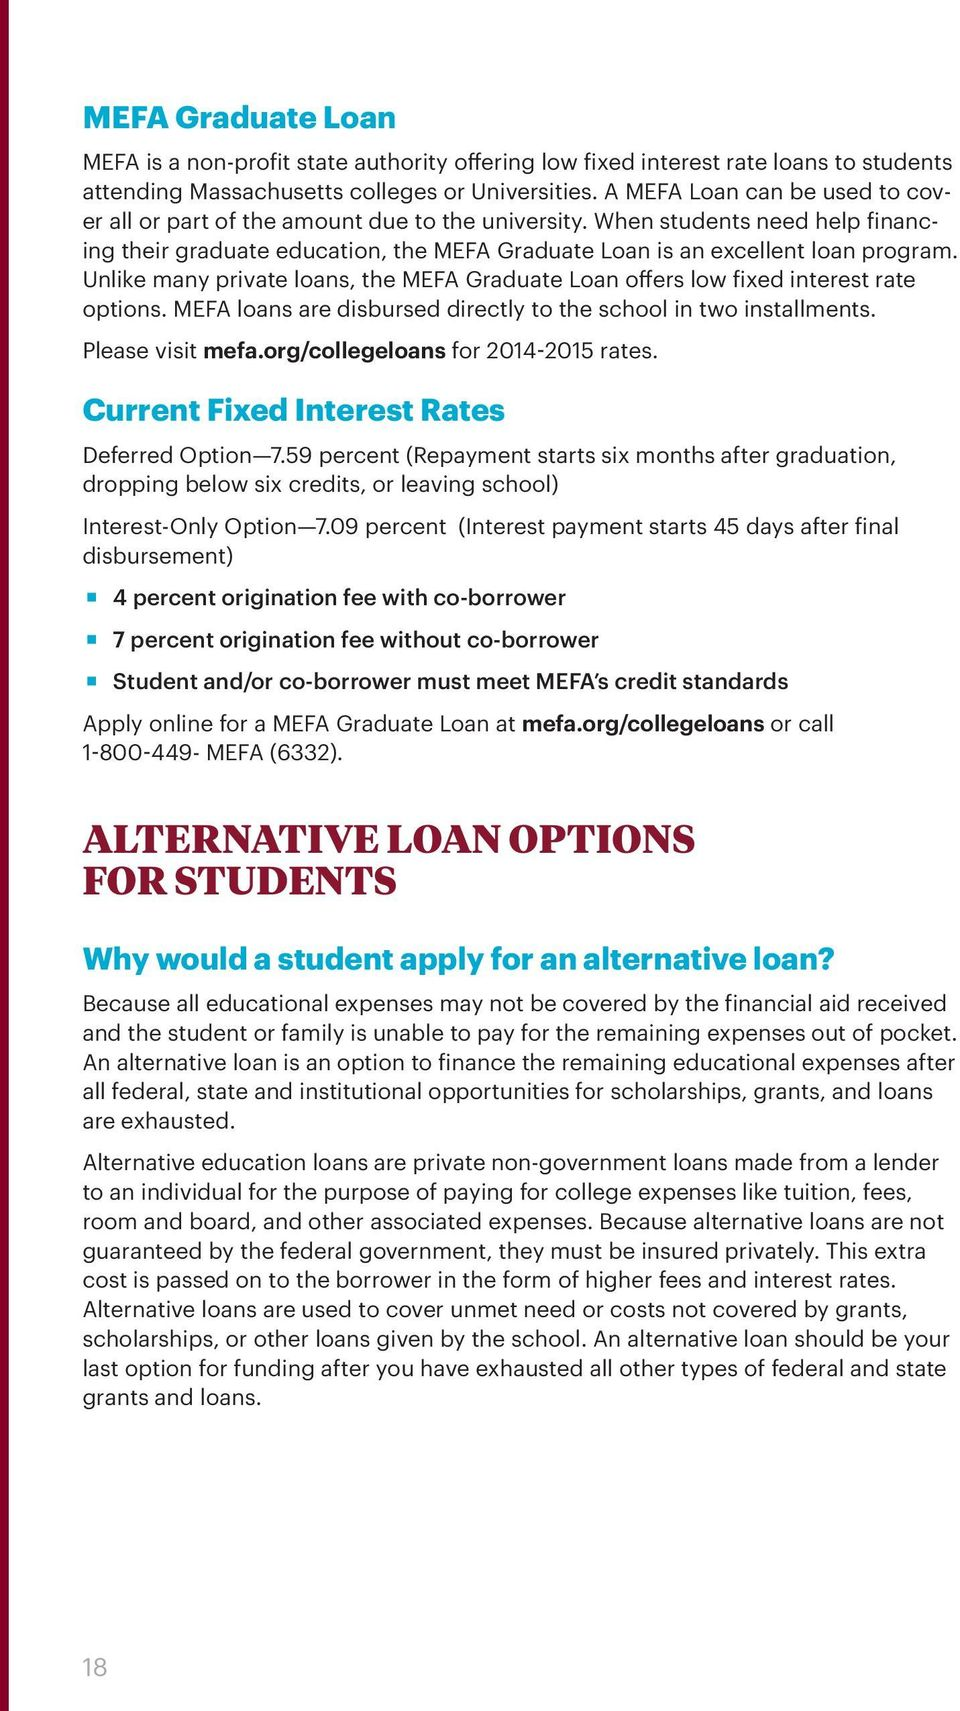 Unlike many private loans, the MEFA Graduate Loan offers low fixed interest rate options. MEFA loans are disbursed directly to the school in two installments. Please visit mefa.